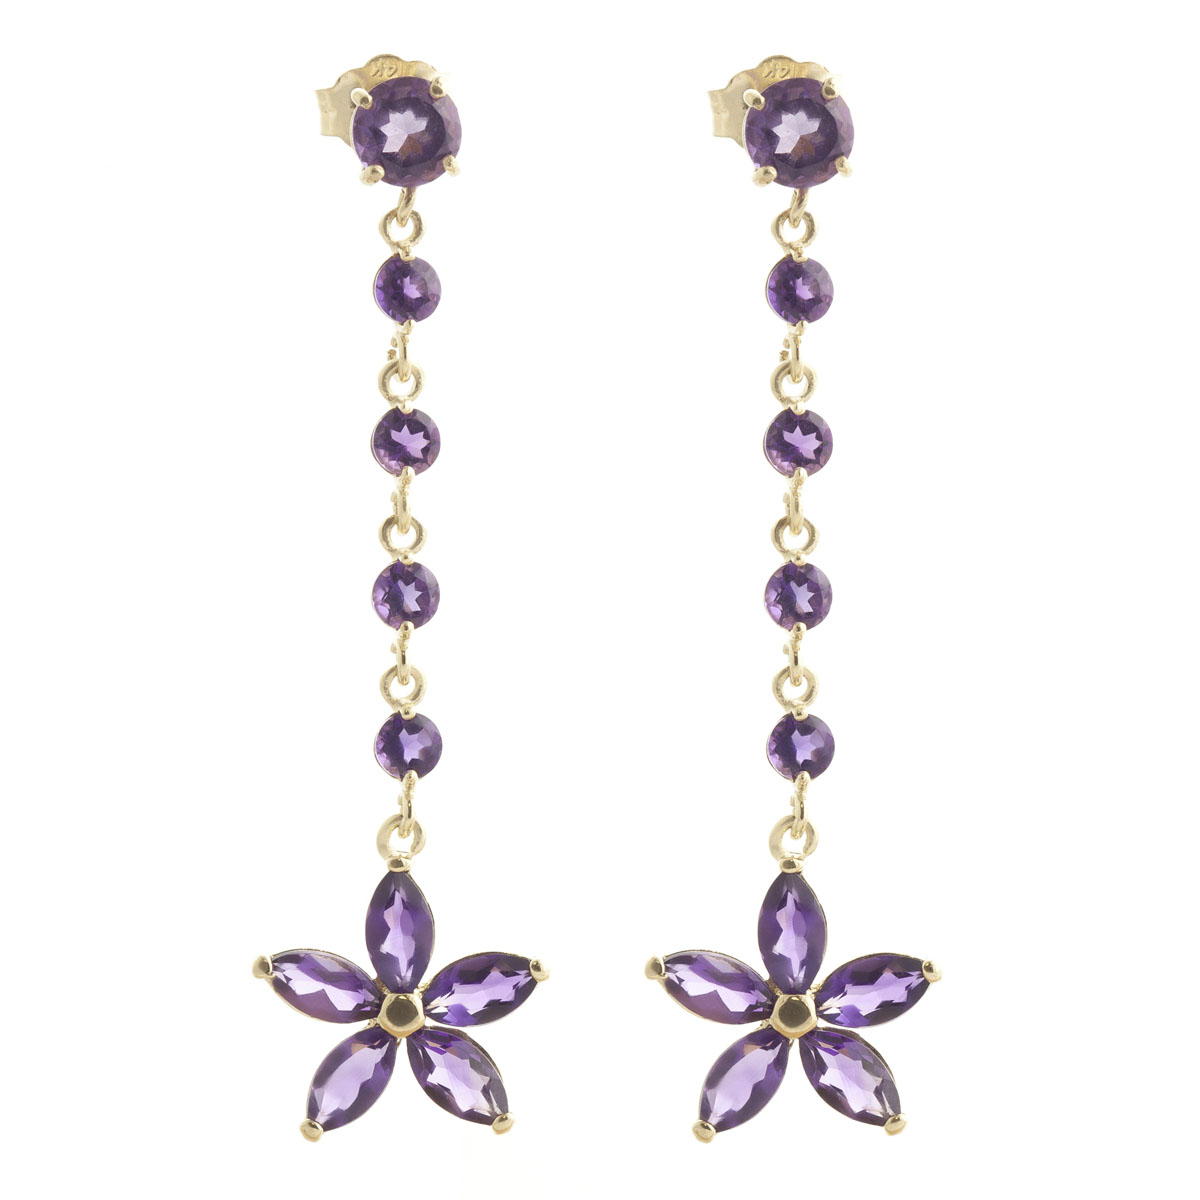 Amethyst Daisy Chain Drop Earrings 4.8 ctw in 9ct Gold